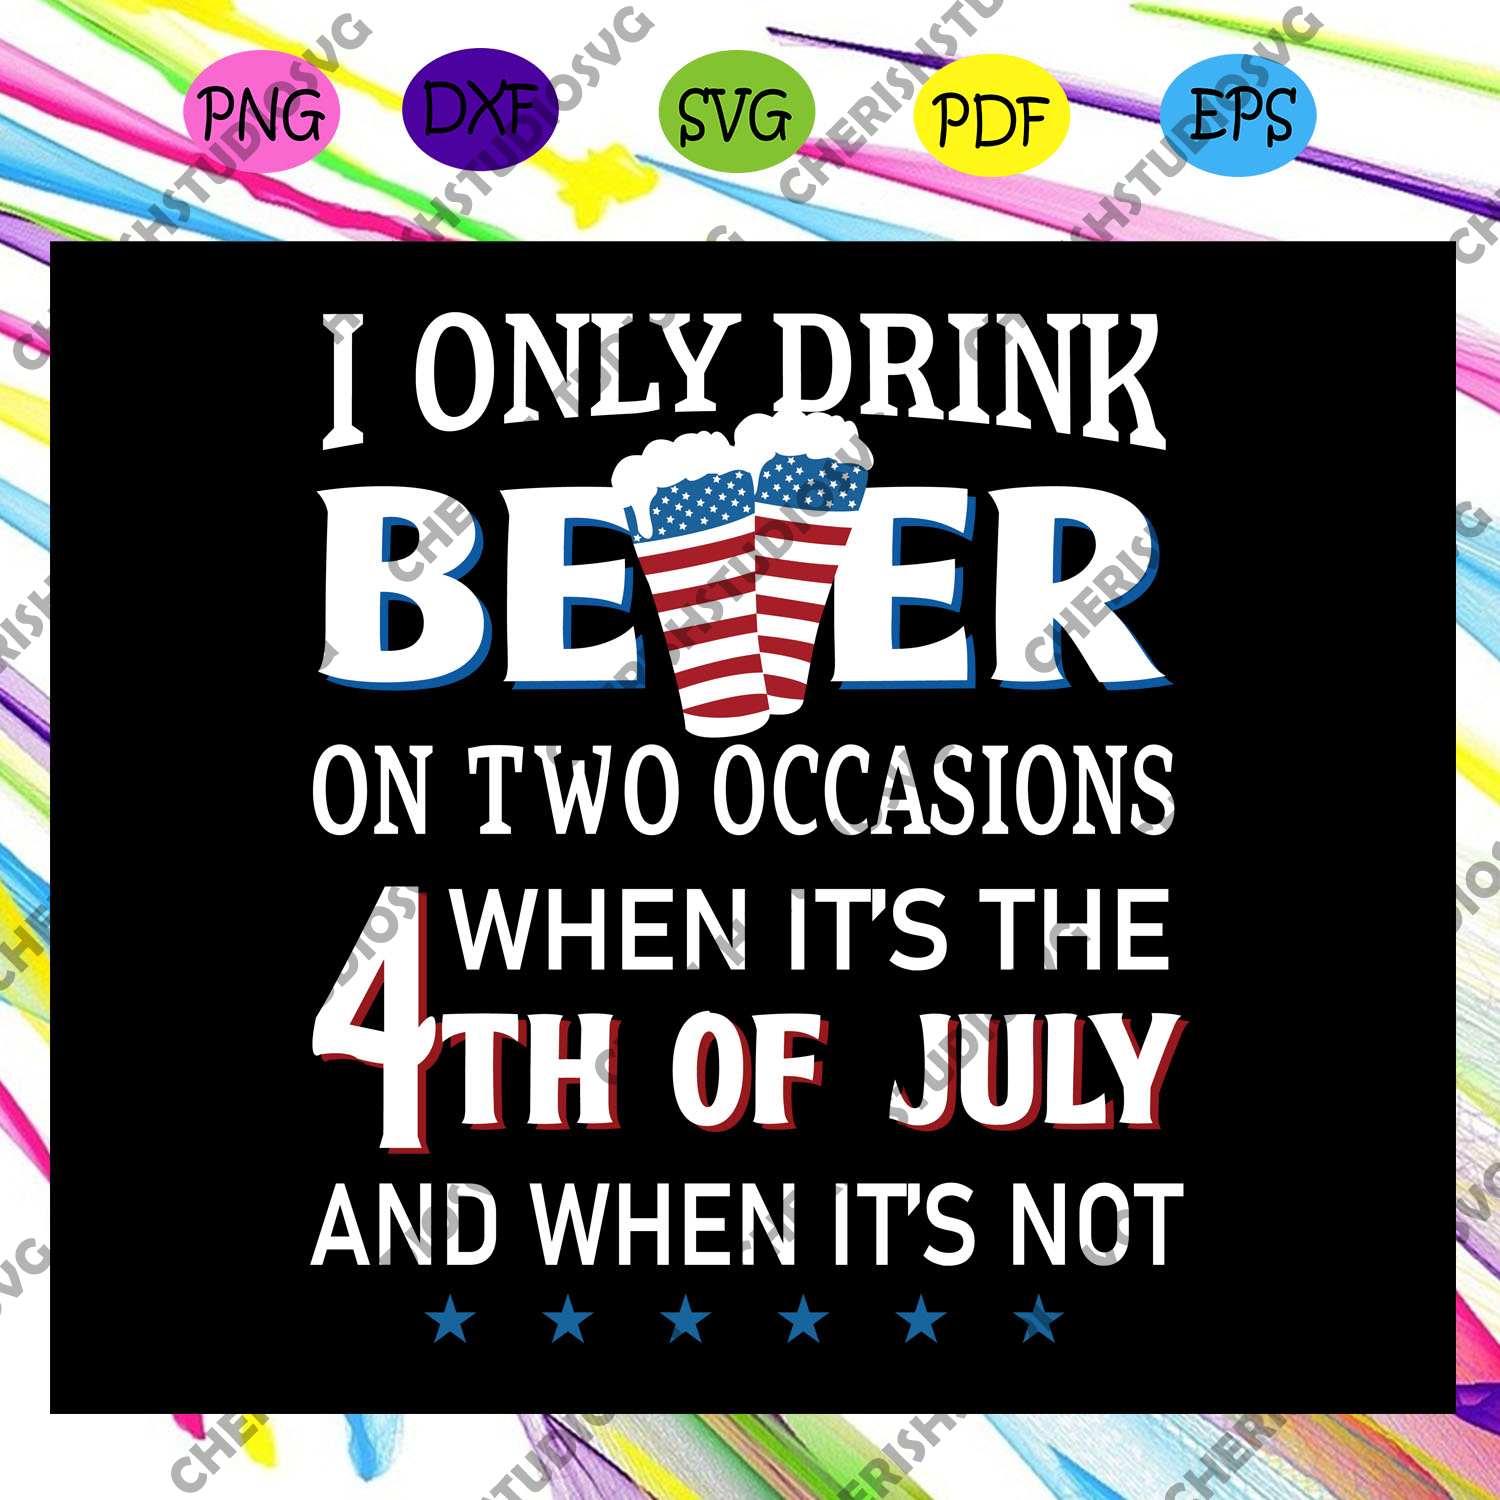 I only drink beer on two occasions when it's the 4th of july,American Svg, 4th Of July Svg, Fourth Of July Svg, Patriotic American Svg, Independence Day Svg, Memorial Day, Files For Silhouette, Files For Cricut, SVG, DXF, EPS, PNG, Instant Download